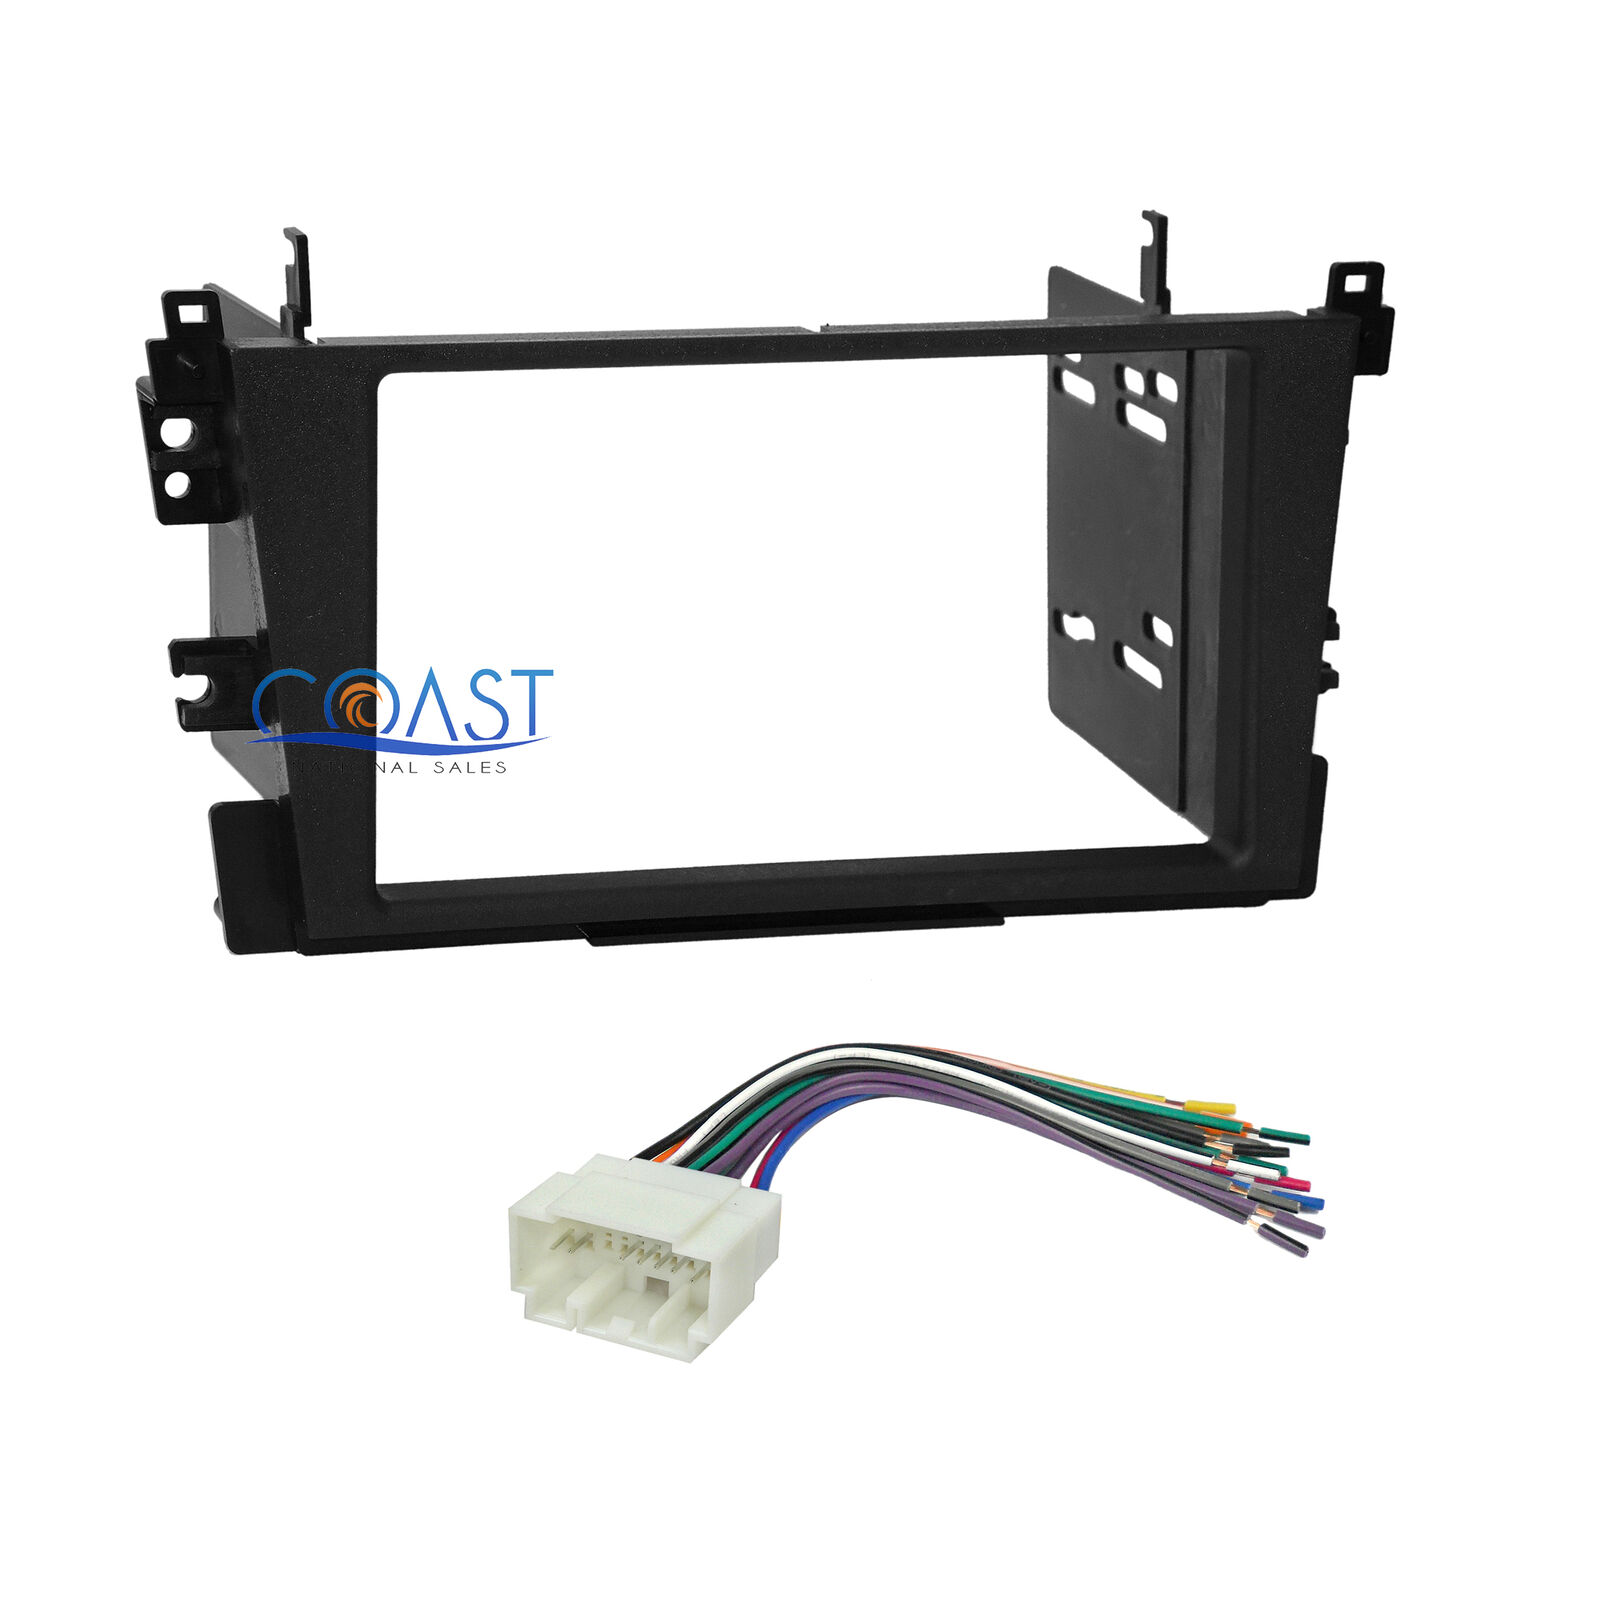 Car Radio Stereo Double Din Dash Kit Wire Harness For 1999 2003 Acura Cl Wiring Speaker Tl 1 Of 3free Shipping See More